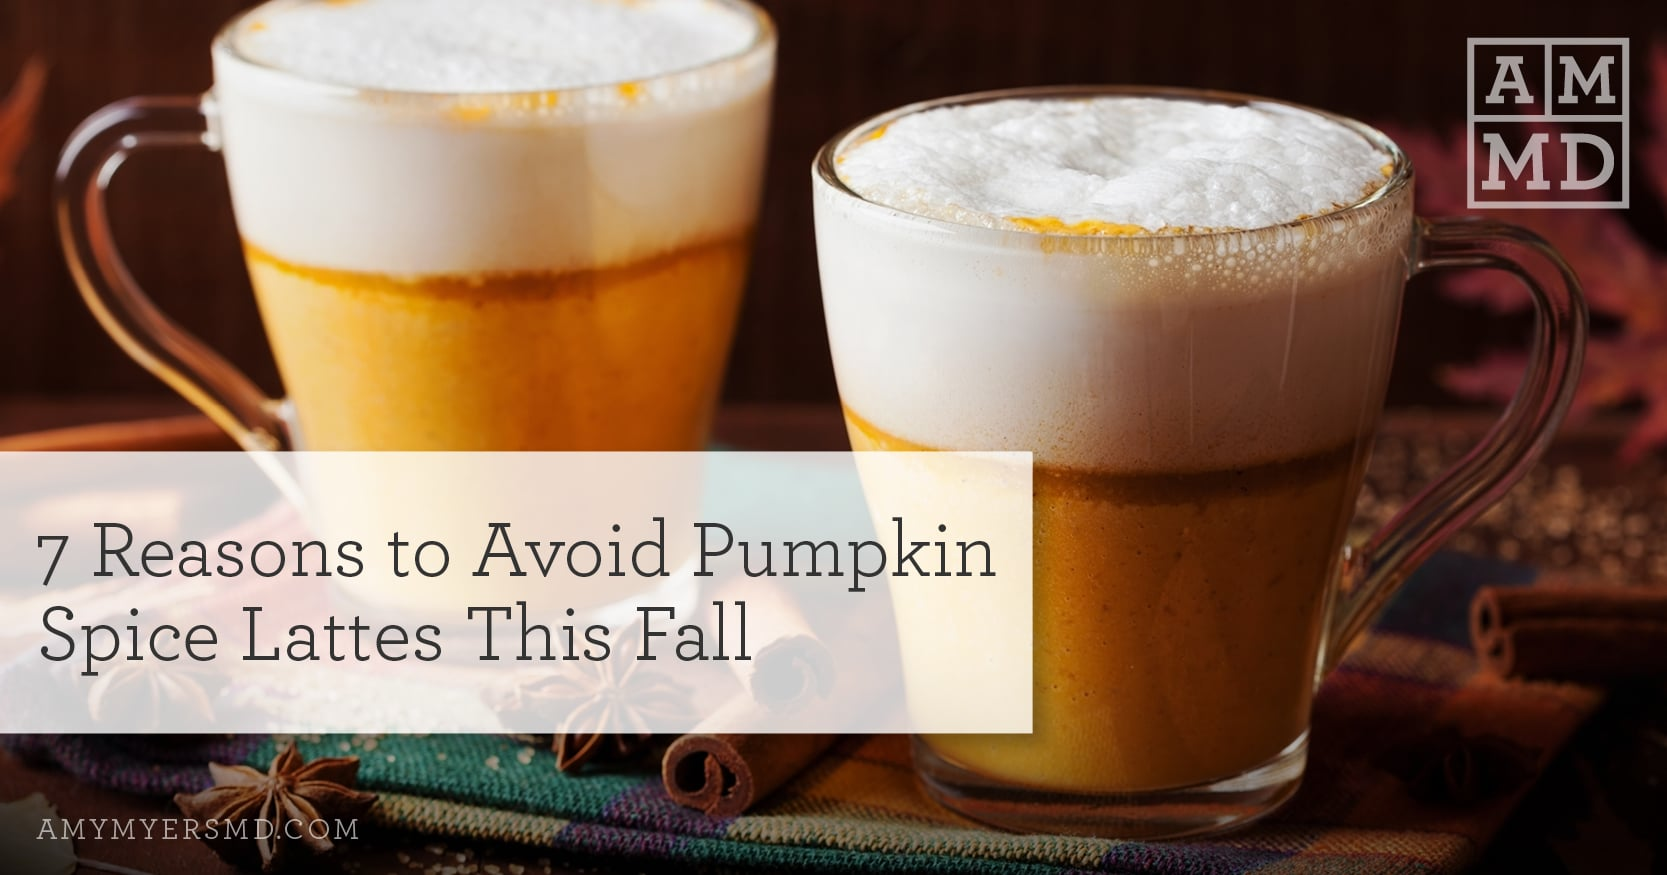 7 Reasons to Avoid Pumpkin Spice Lattes This Fall - Pumpkin Spice Lattes - Featured Image - Amy Myers MD